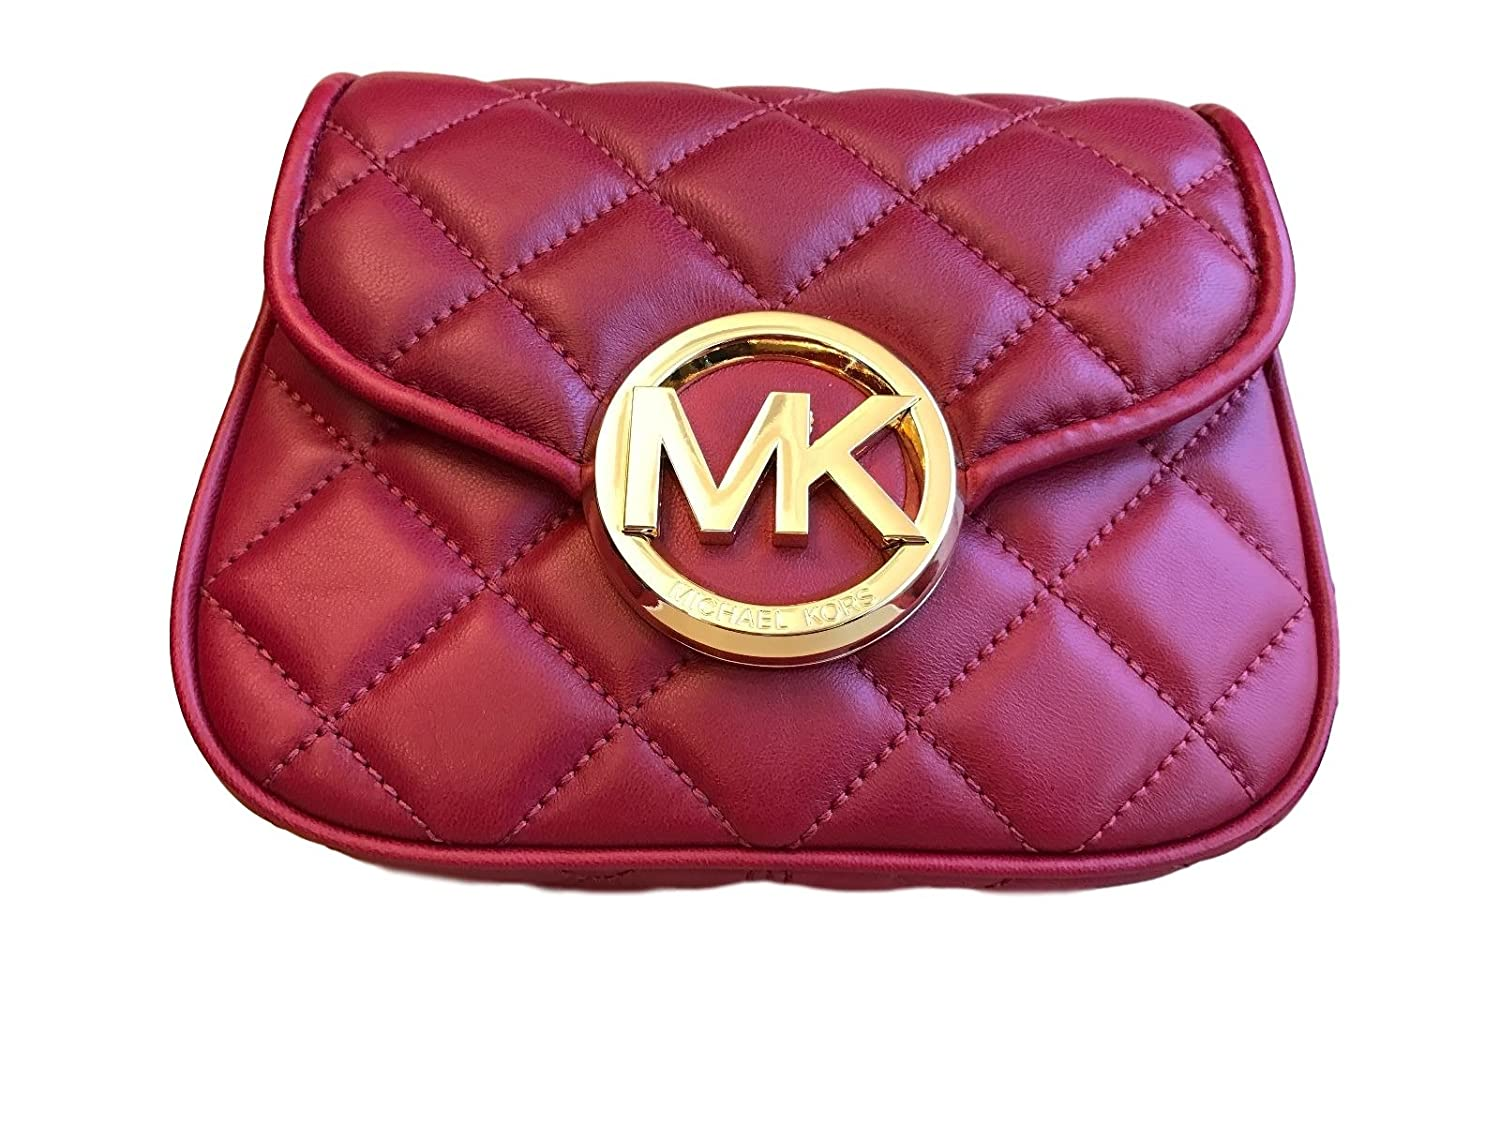 4b090e2651f5 MICHAEL KORS FULTON QUILT SMALL FLAP CROSSBODY BAG IN CHERRY  Handbags   Amazon.com